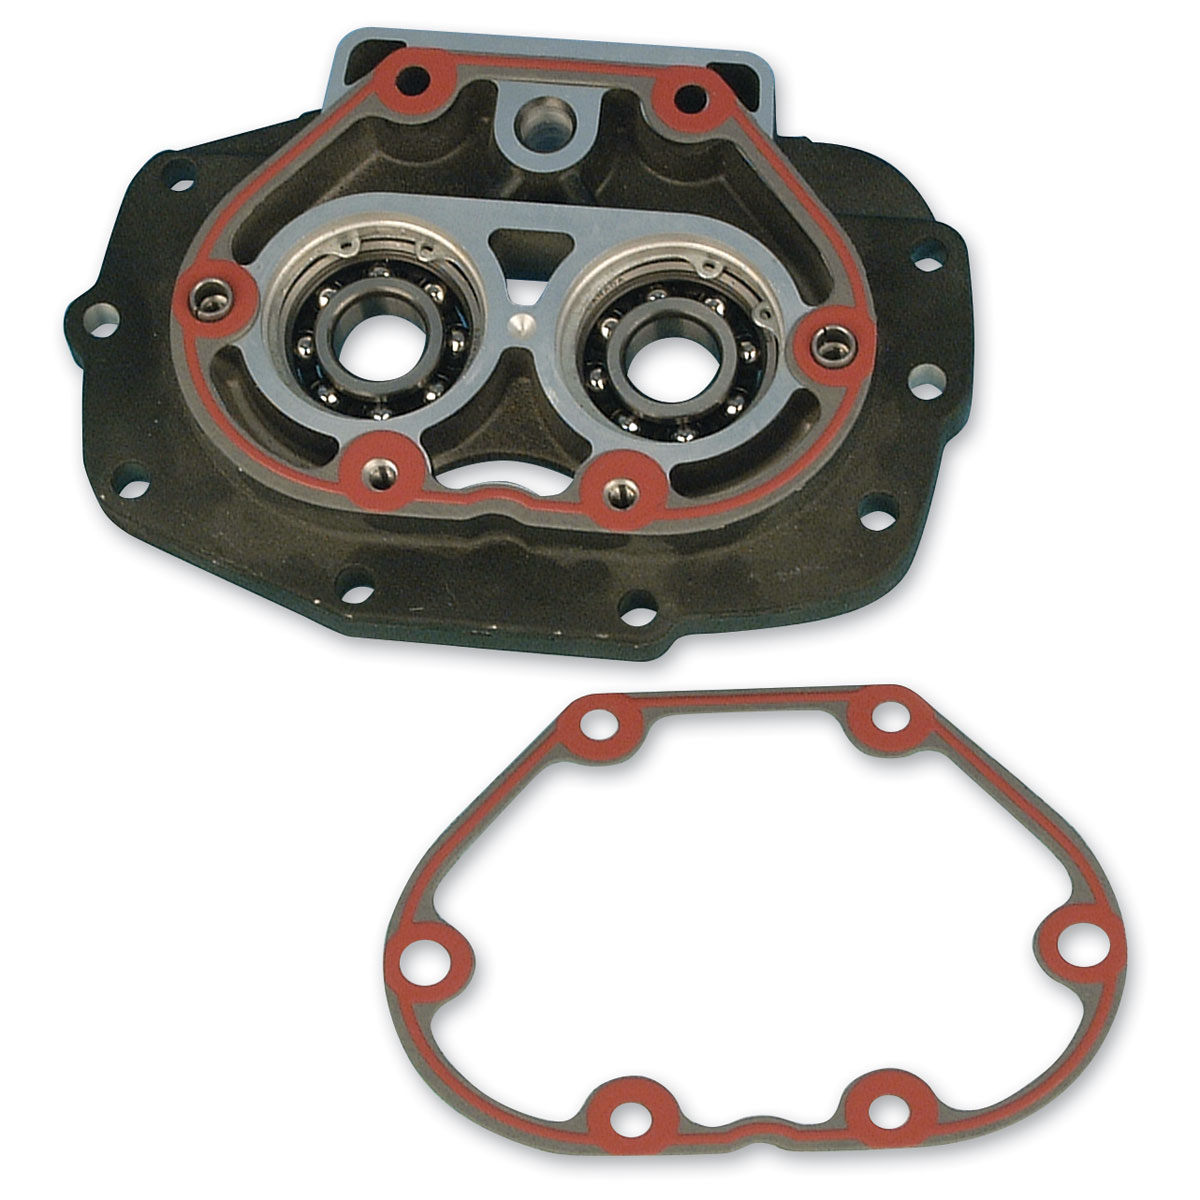 Genuine James Paper Clutch Release Cover Gasket